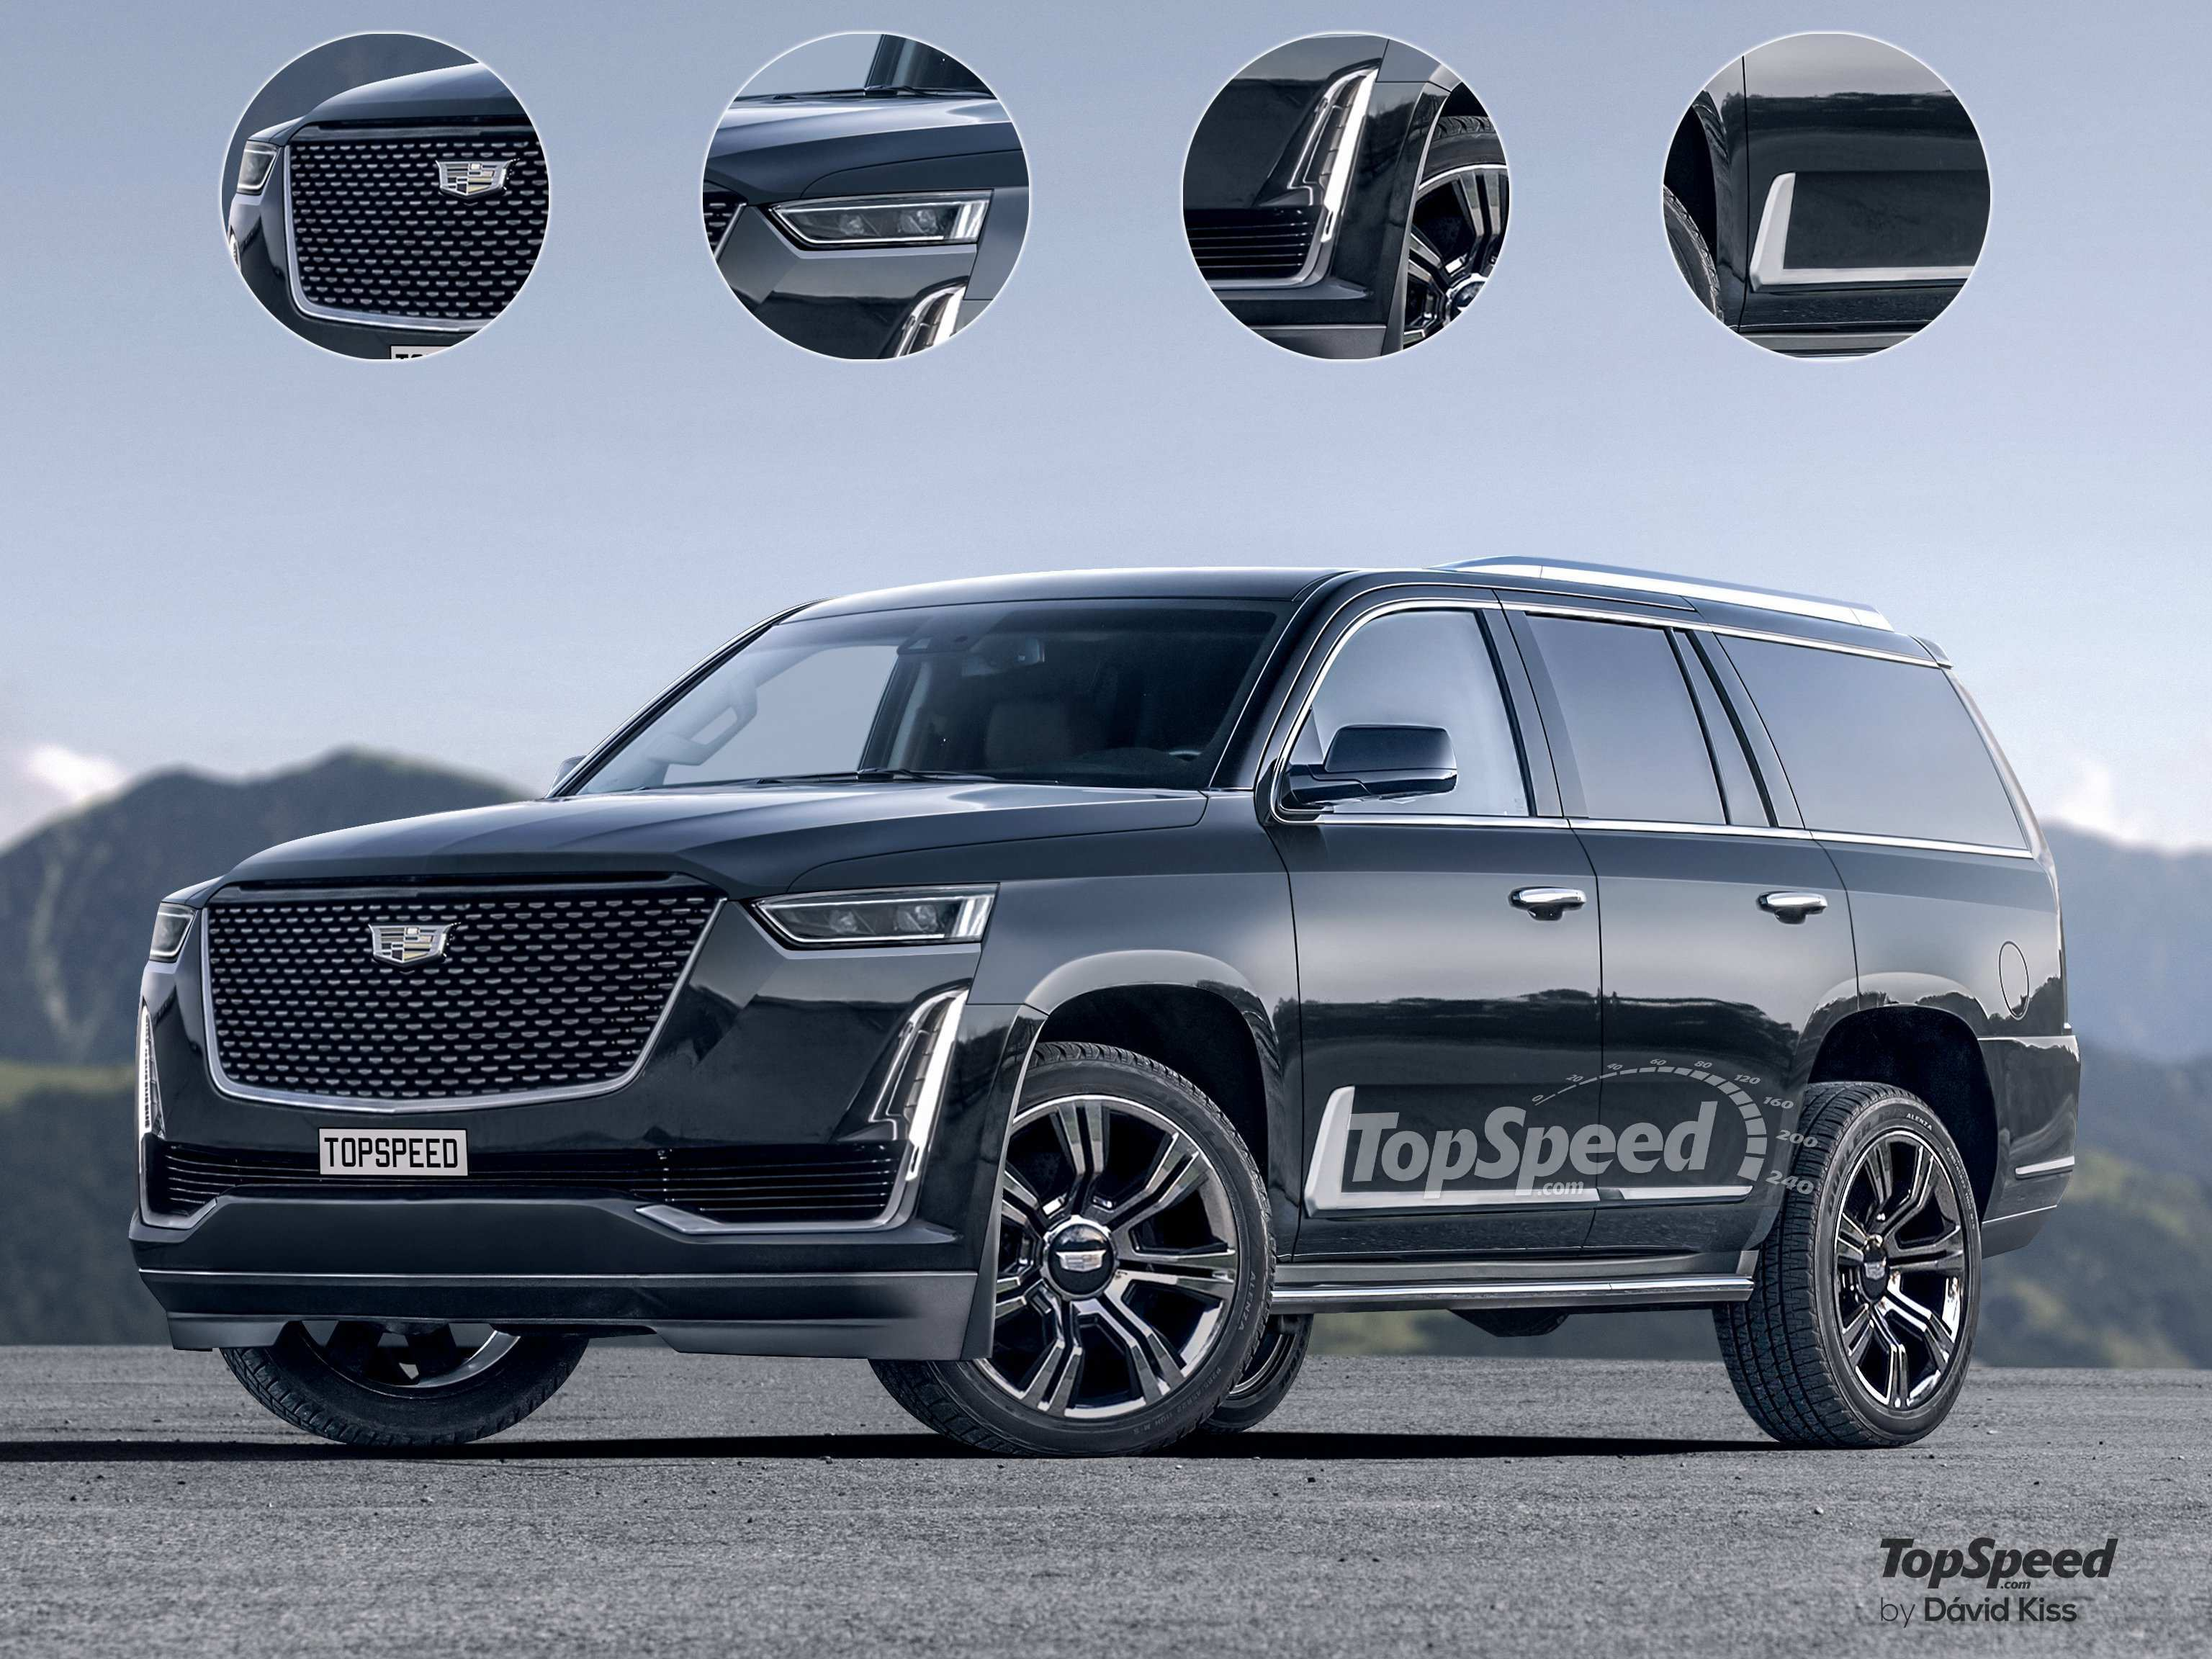 76 A Release Date For 2020 Cadillac Escalade Exterior And Interior